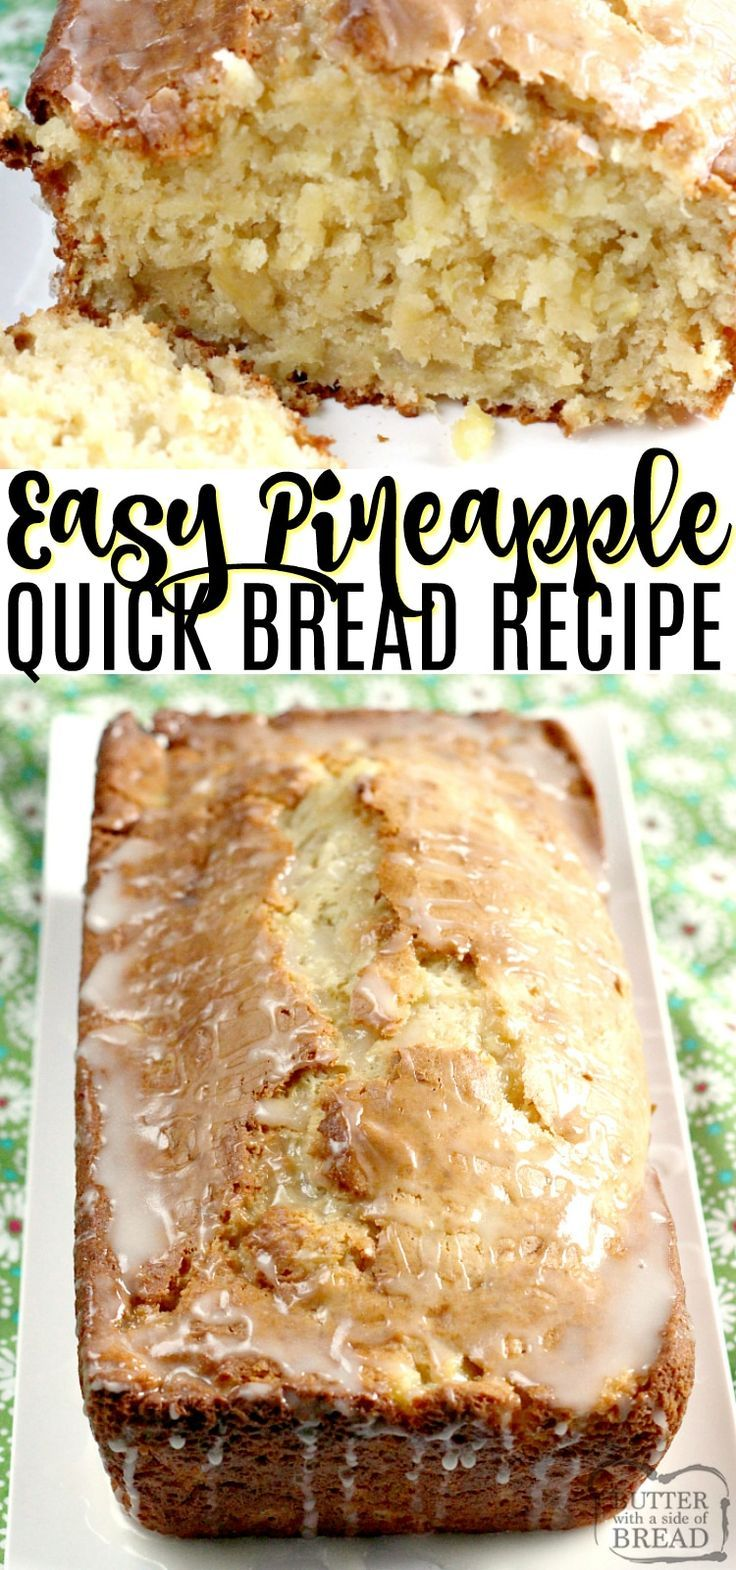 Pineapple Quick Bread In 2020 Bread Recipes Sweet Bread Recipes Homemade Quick Bread Recipes